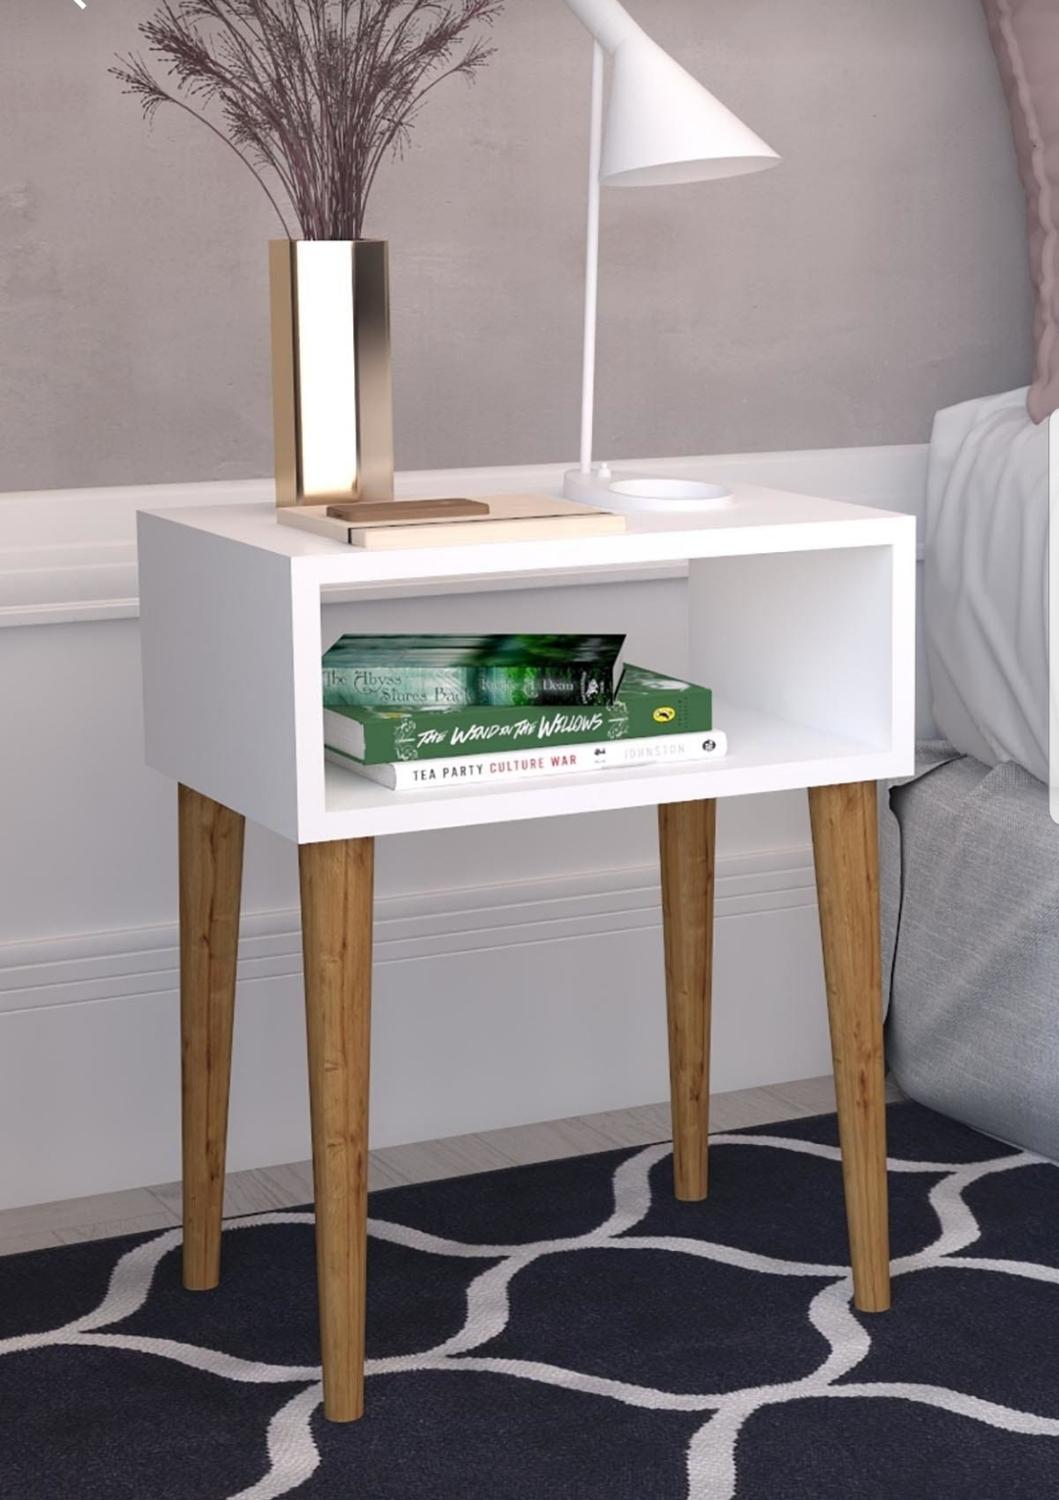 Home Side Table Furniture Square Coffee Table Living Room Small Bedside Table Design End Table Sofaside